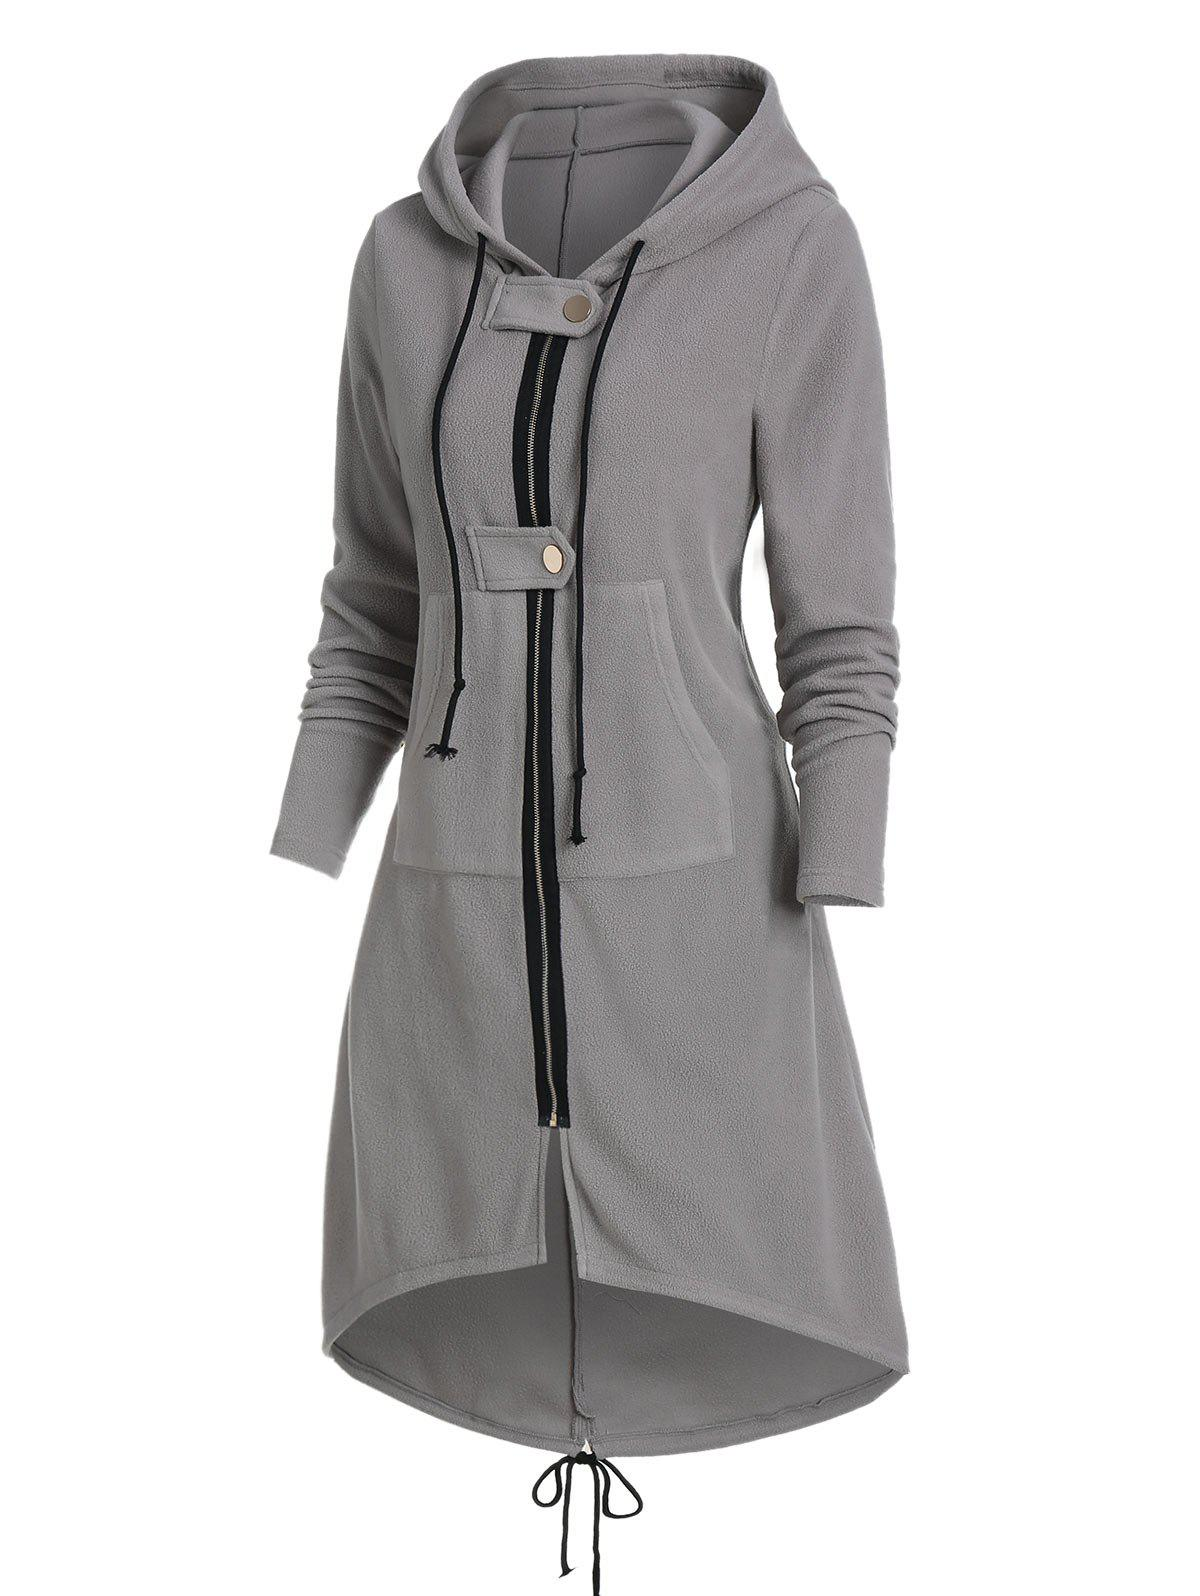 Fashion Hooded Kangaroo Pocket Zip Up High Low Coat